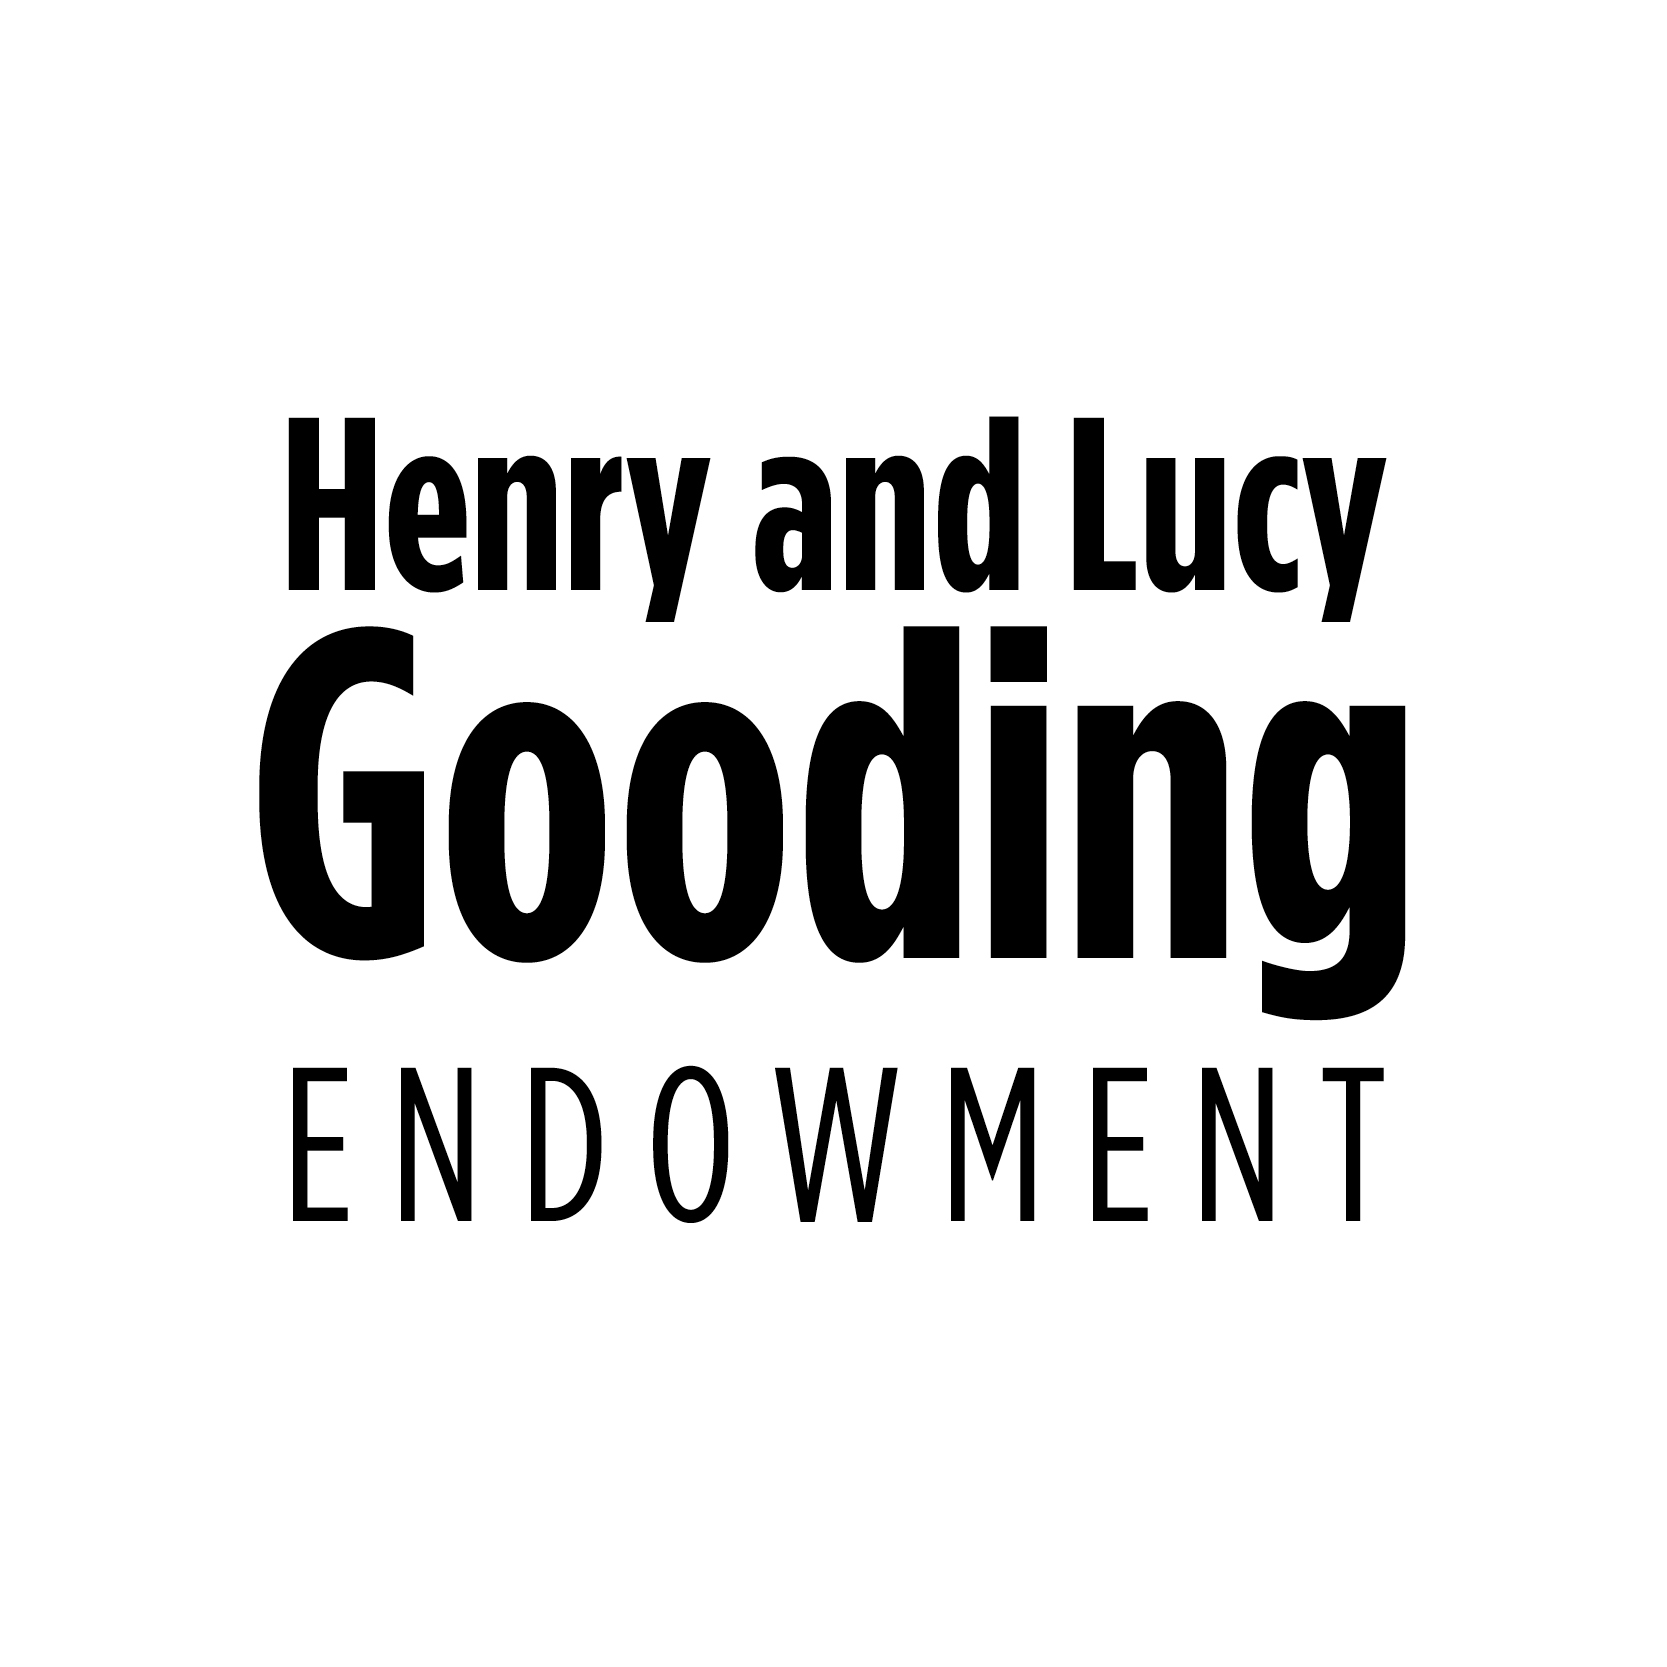 Henry and Lucy Gooding